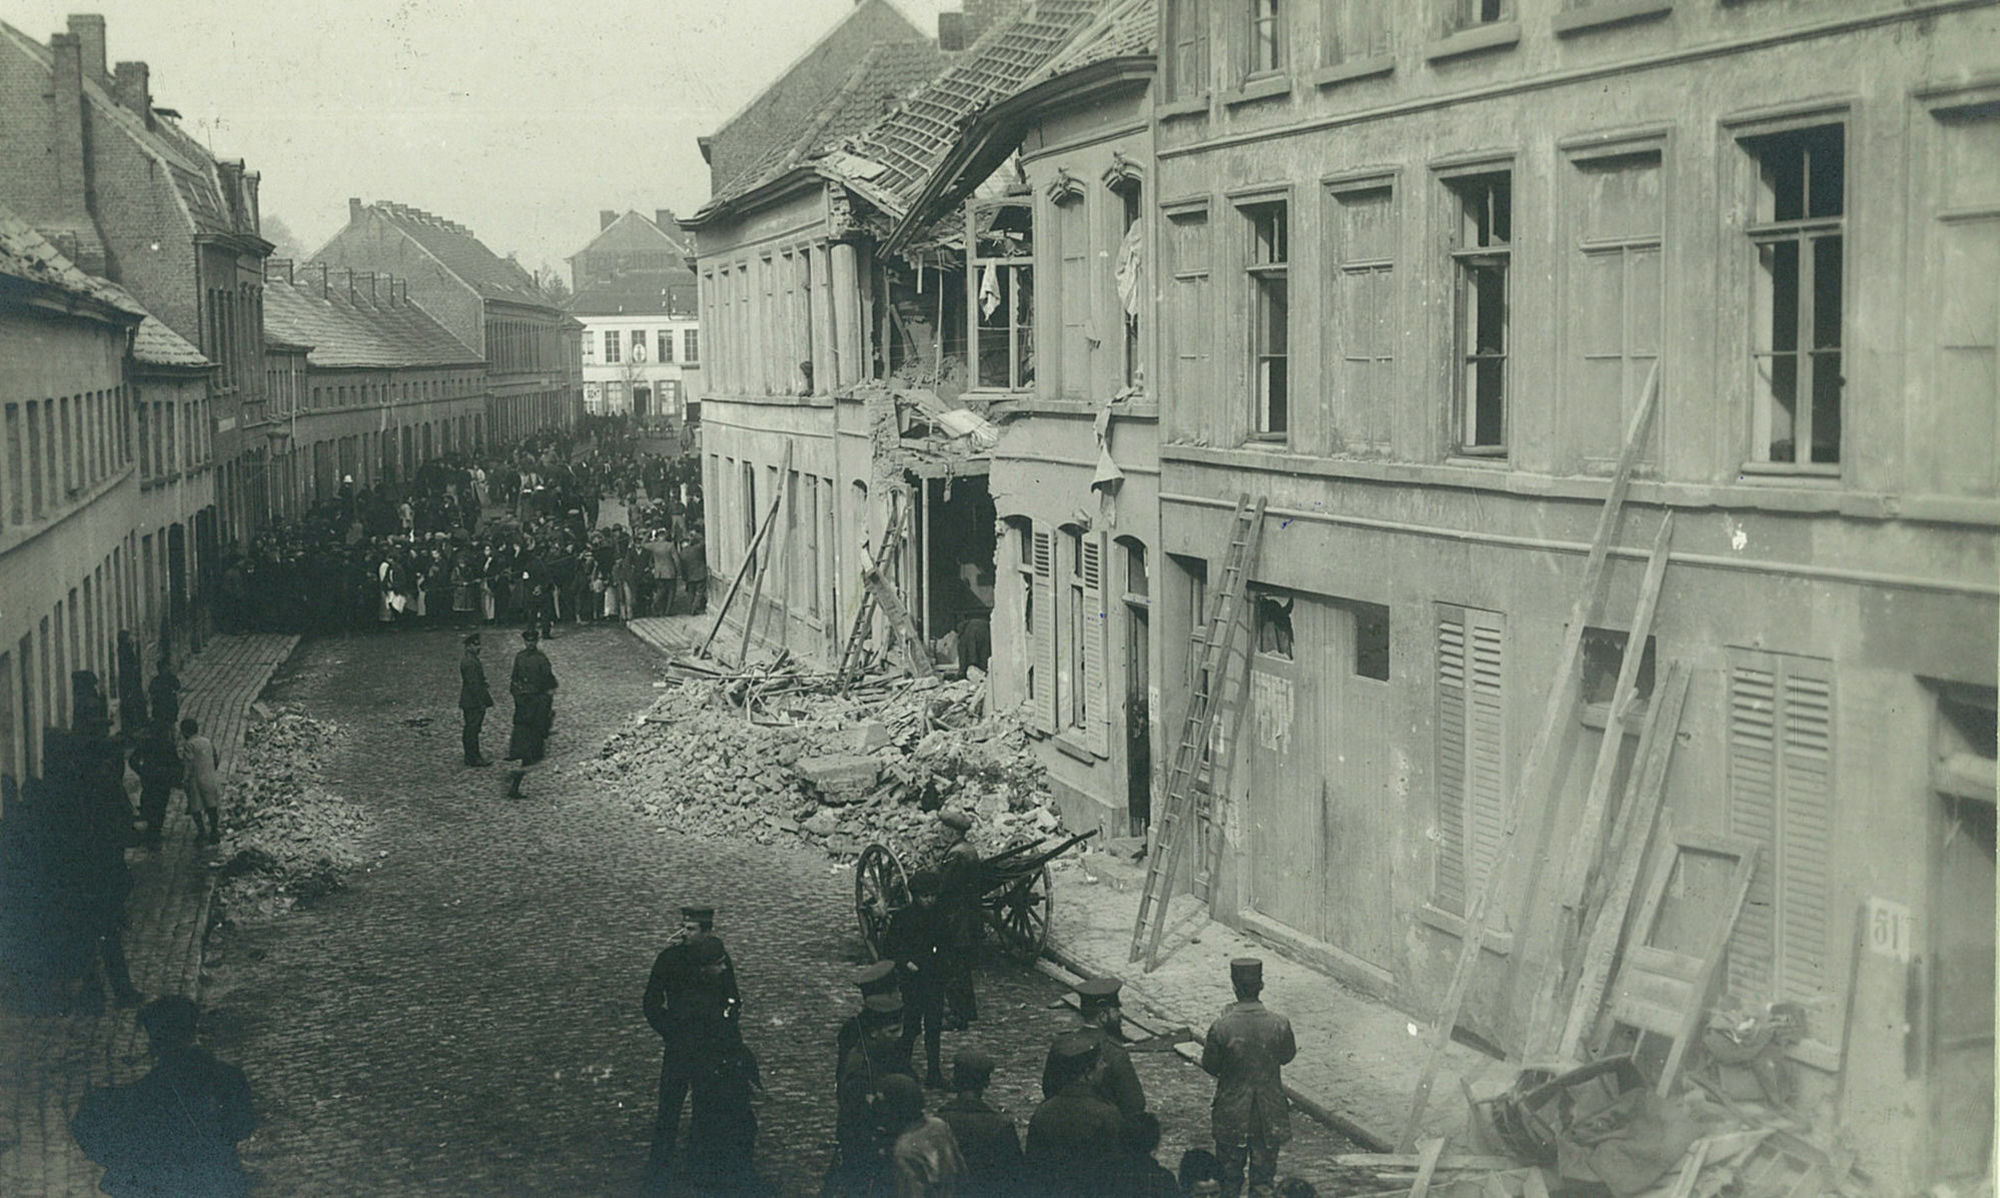 Pluimstraat in 1918